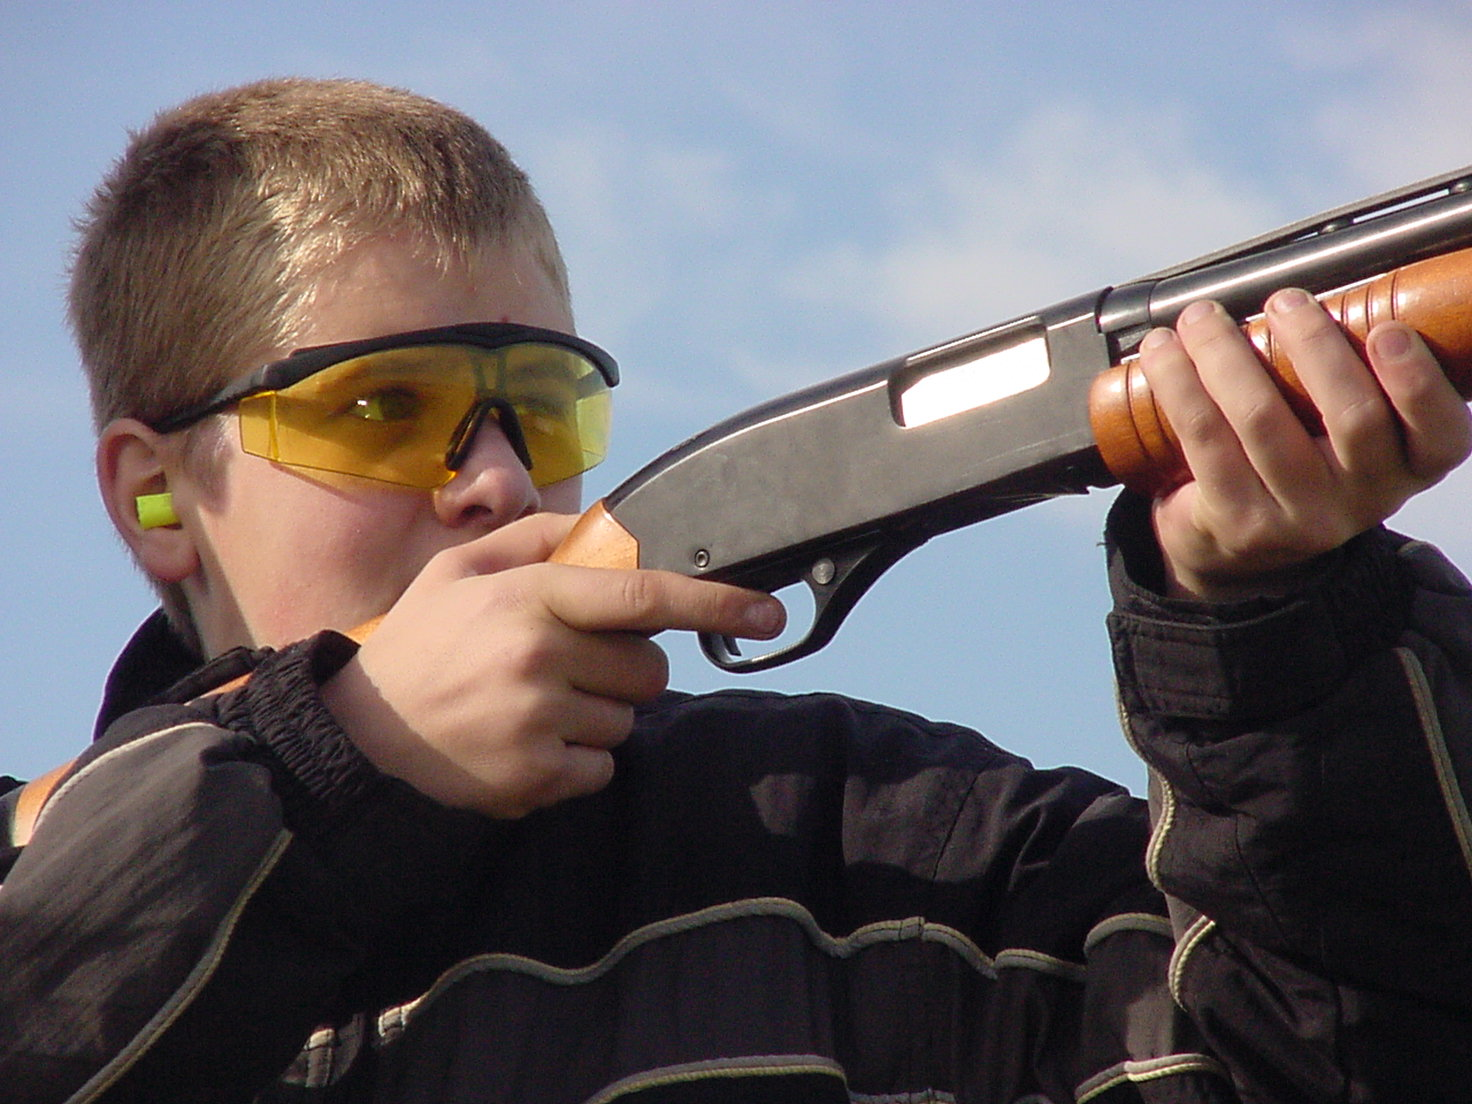 Youth at shooting range.